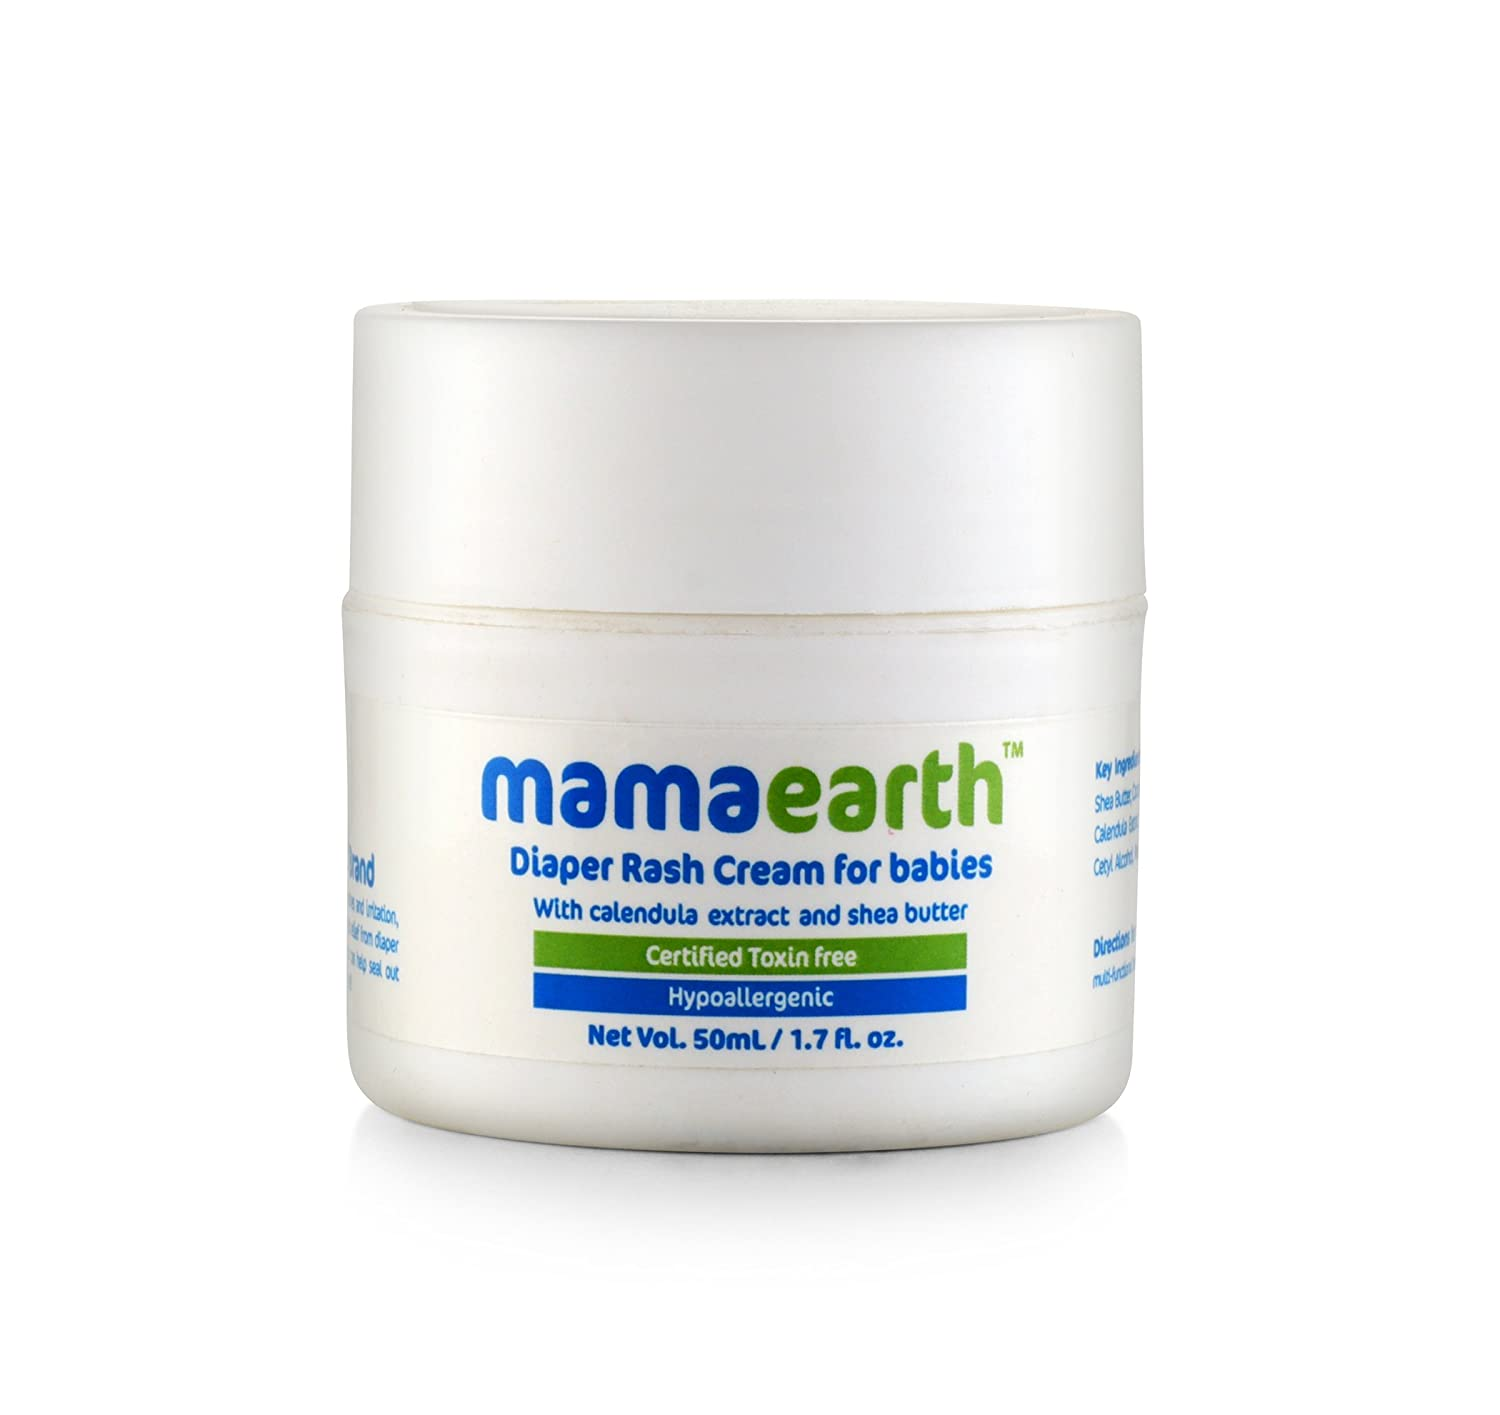 Mamaearth Baby Diaper Rash Cream with Zinc Oxide (Maximum Strength) for Babies, Made in The Himalayas- Hypoallergenic, Toxin-Free, All Natural with Organic Ingredients (50ml)